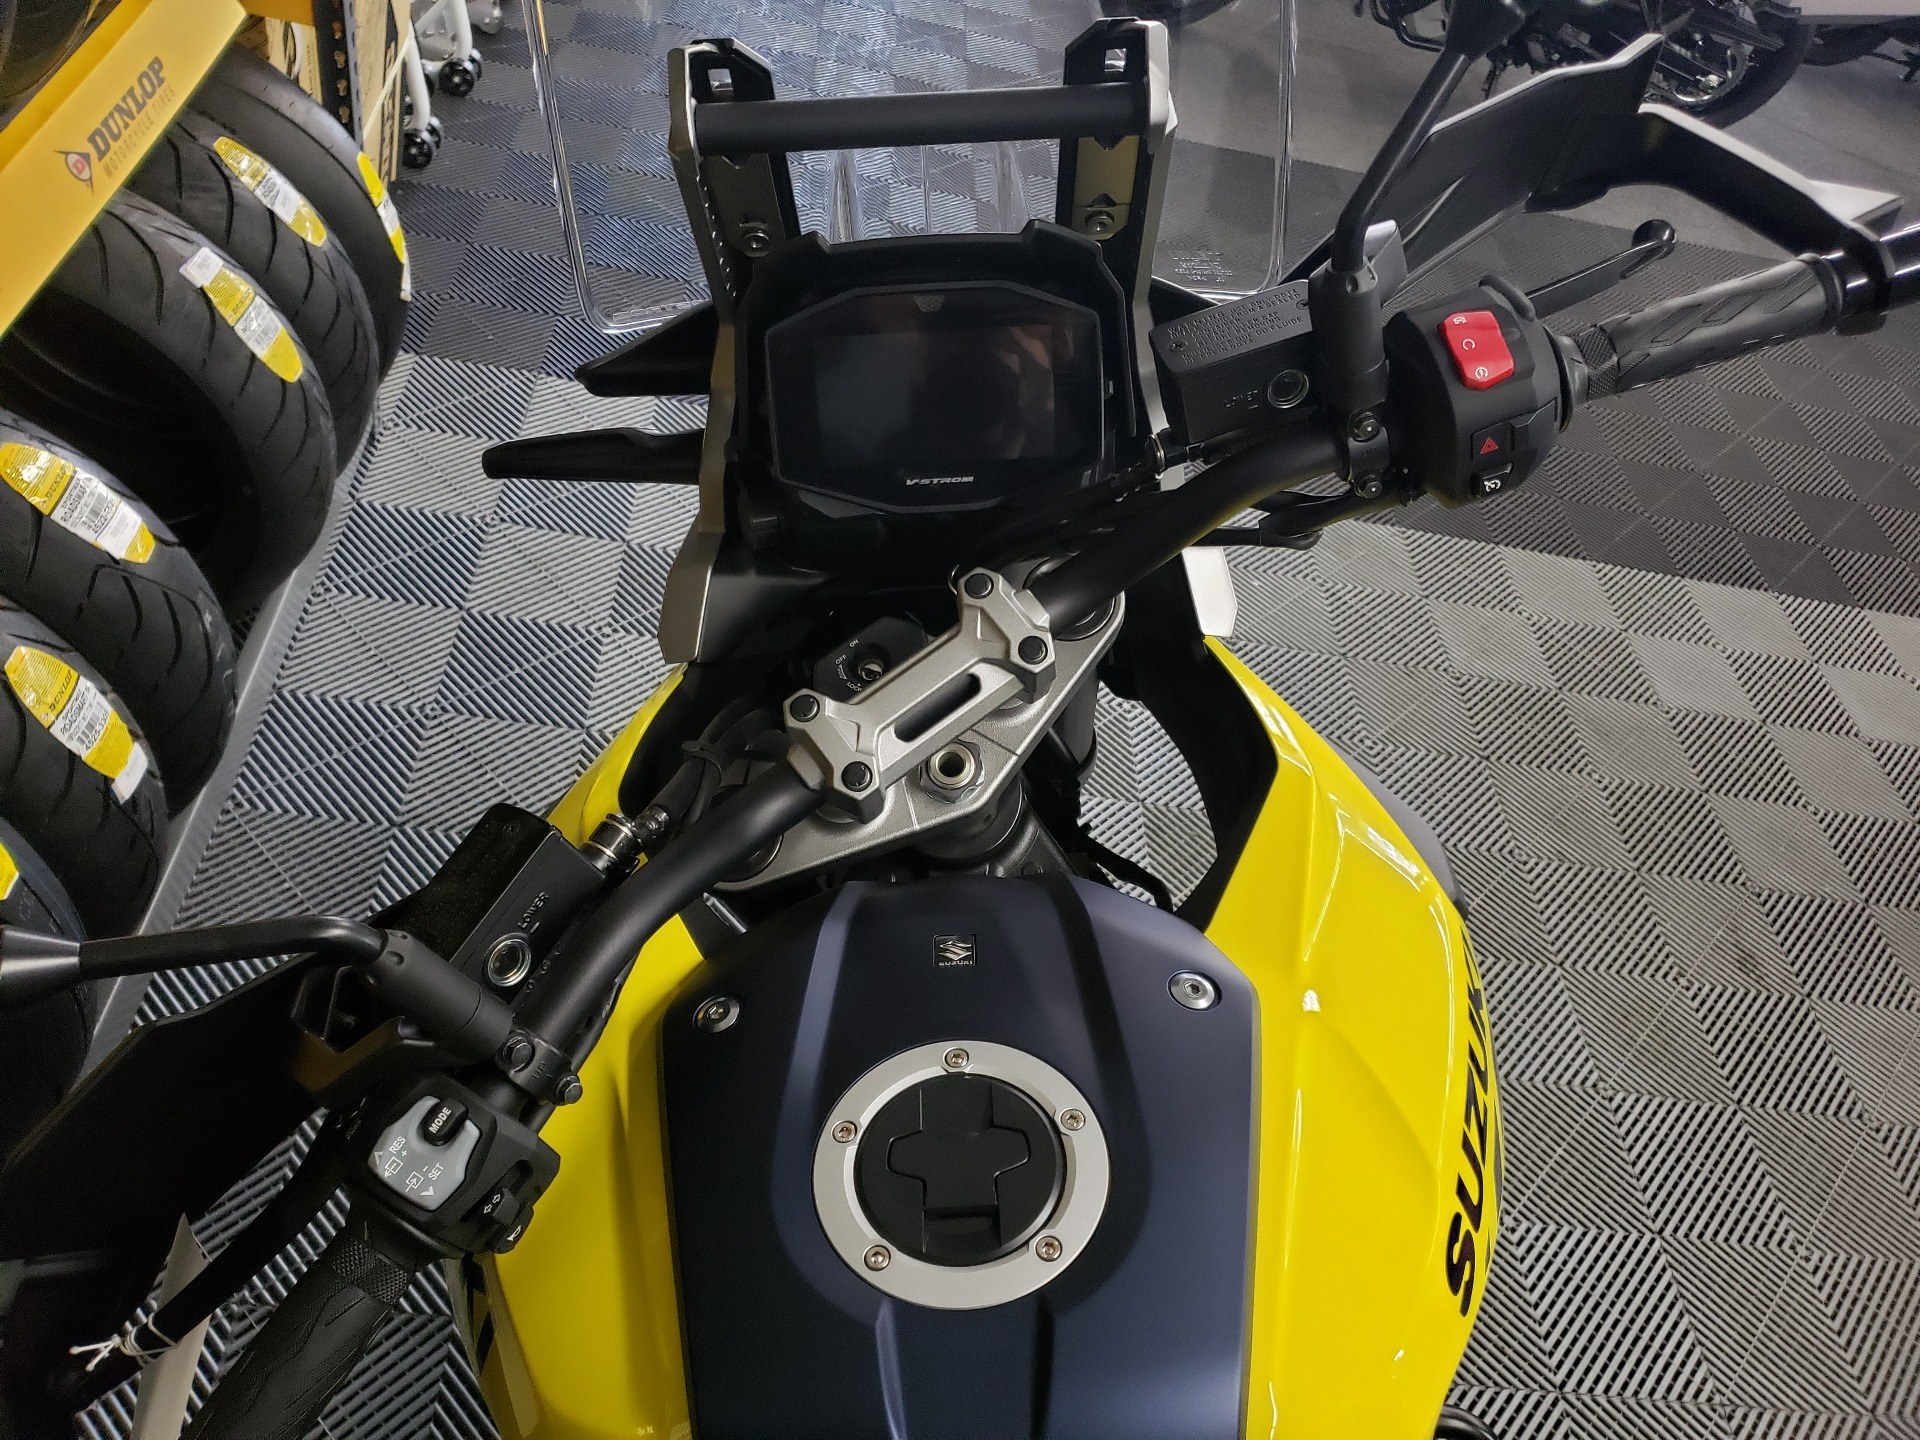 2020 Suzuki V-Strom 1050XT in Van Nuys, California - Photo 5